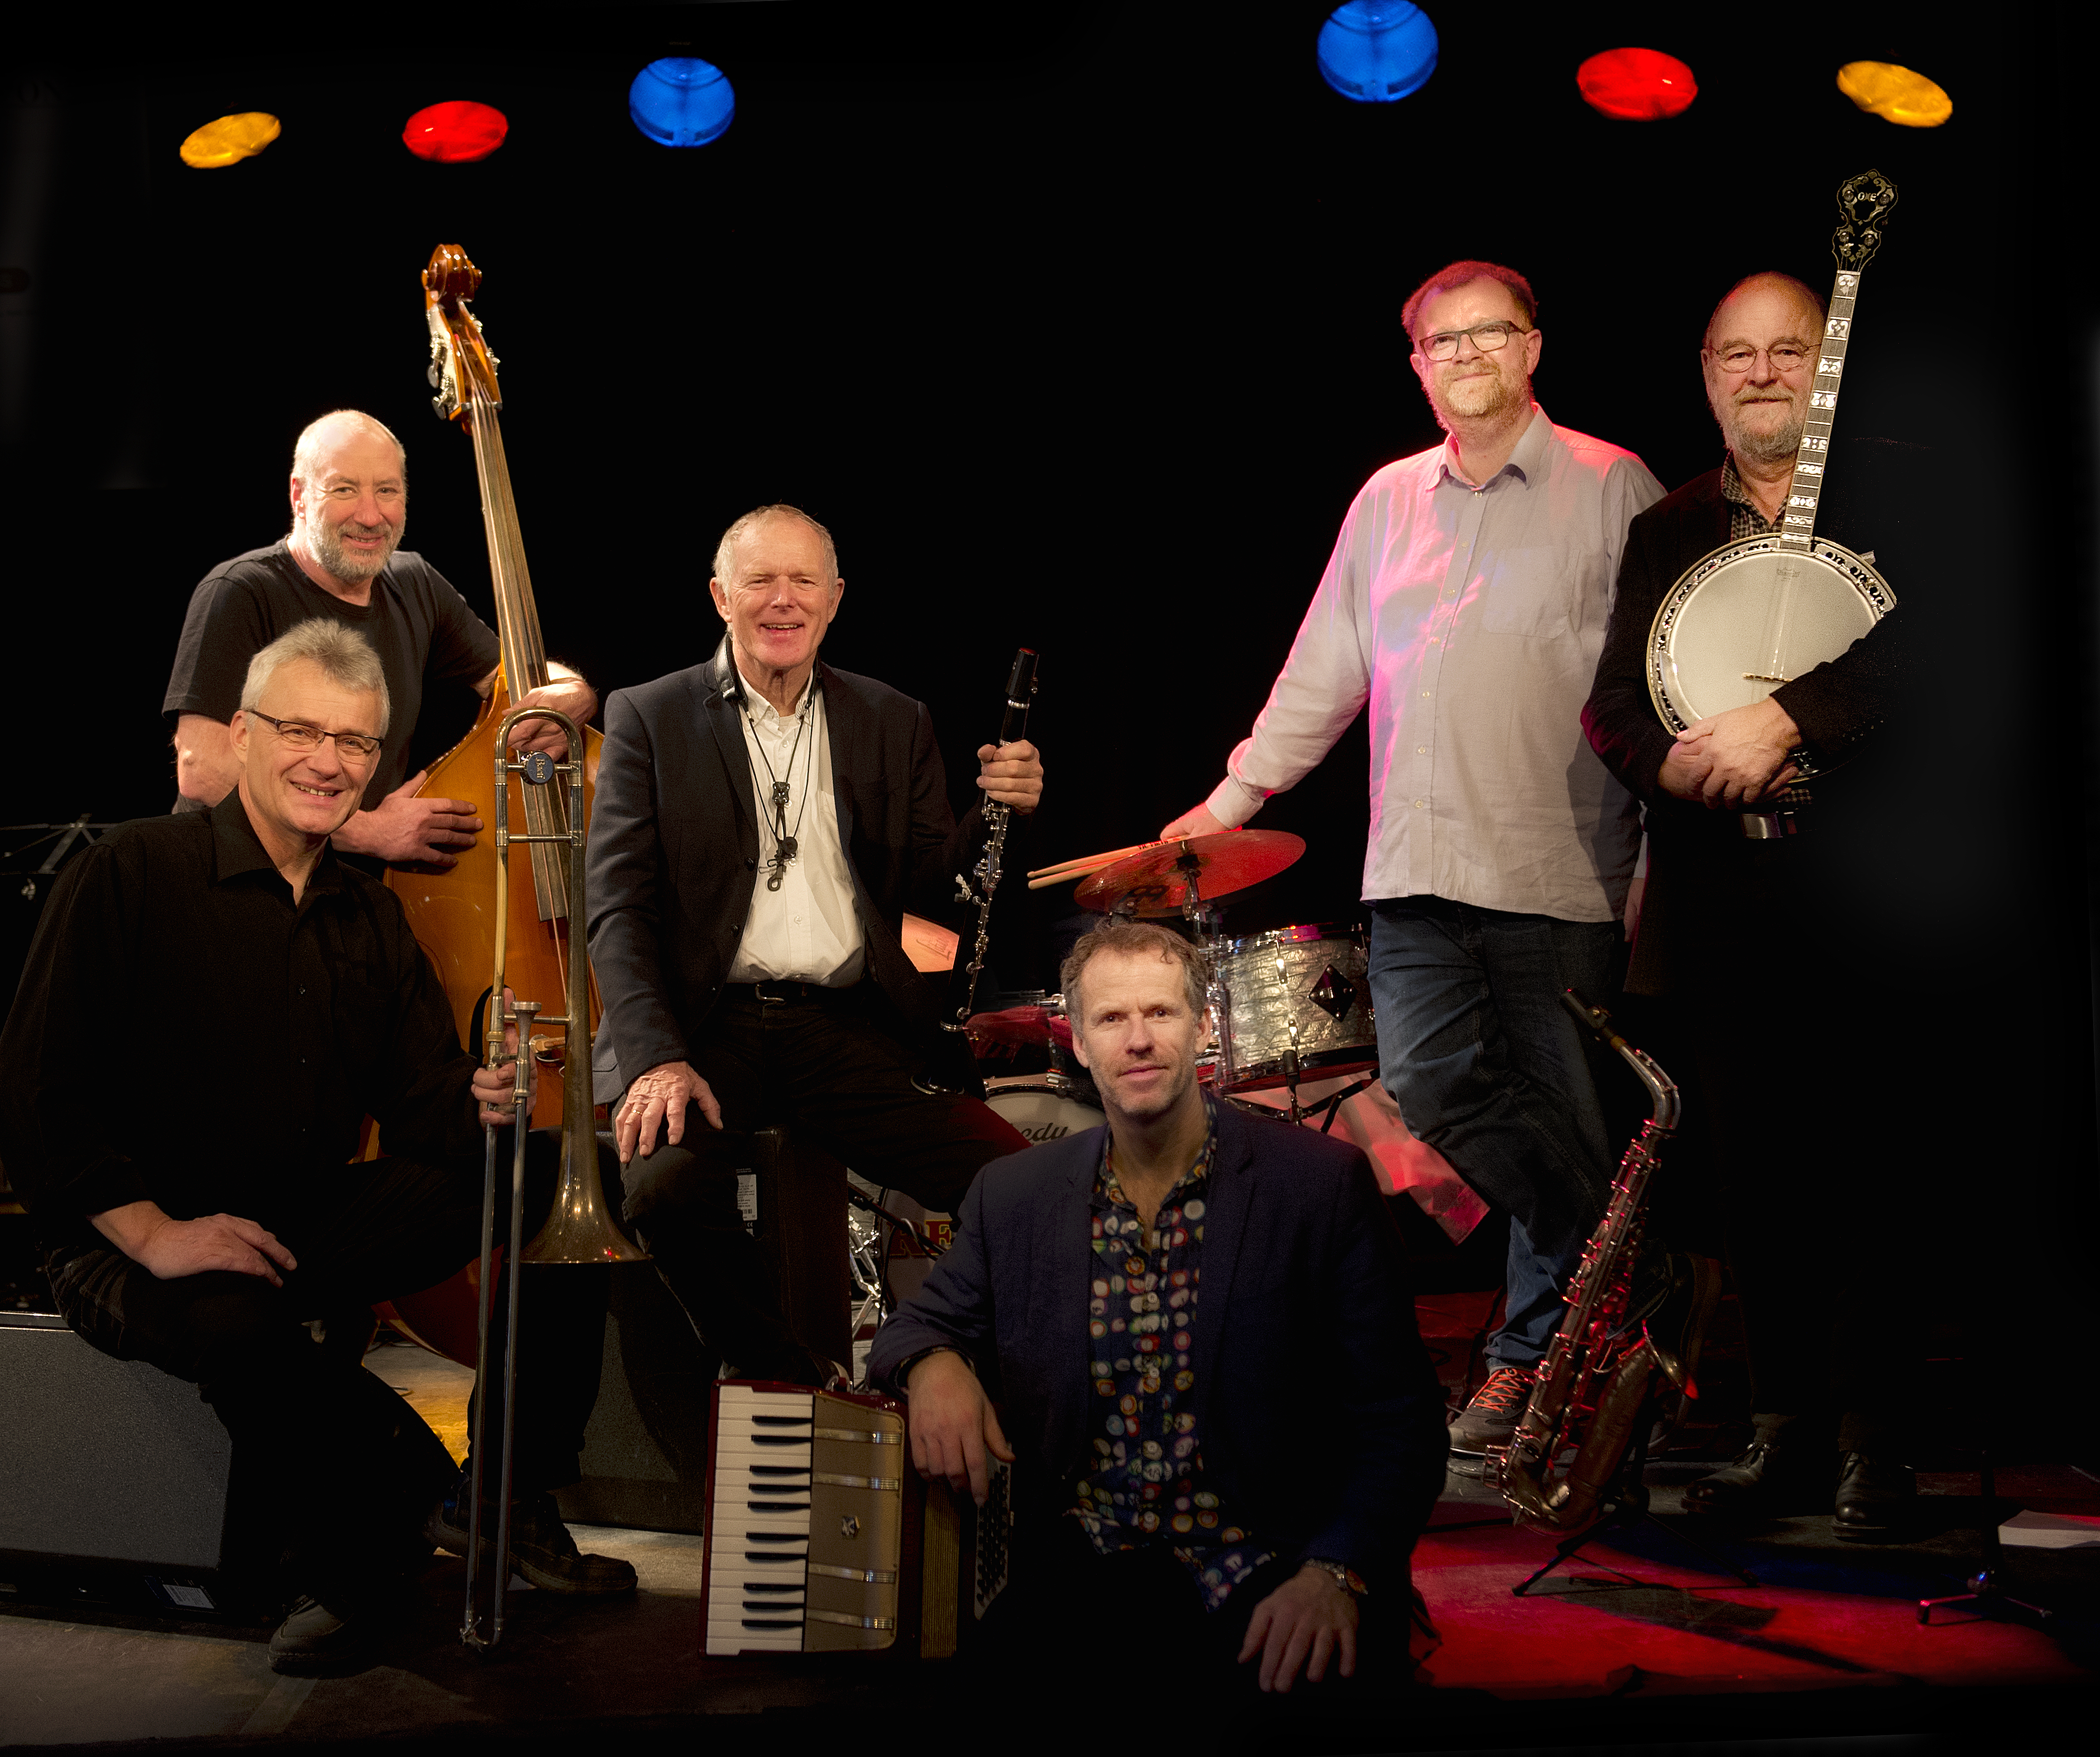 Red Hot Four featuring Jan Nielsen and Finn Burich in Silkeborg on 11/01/20